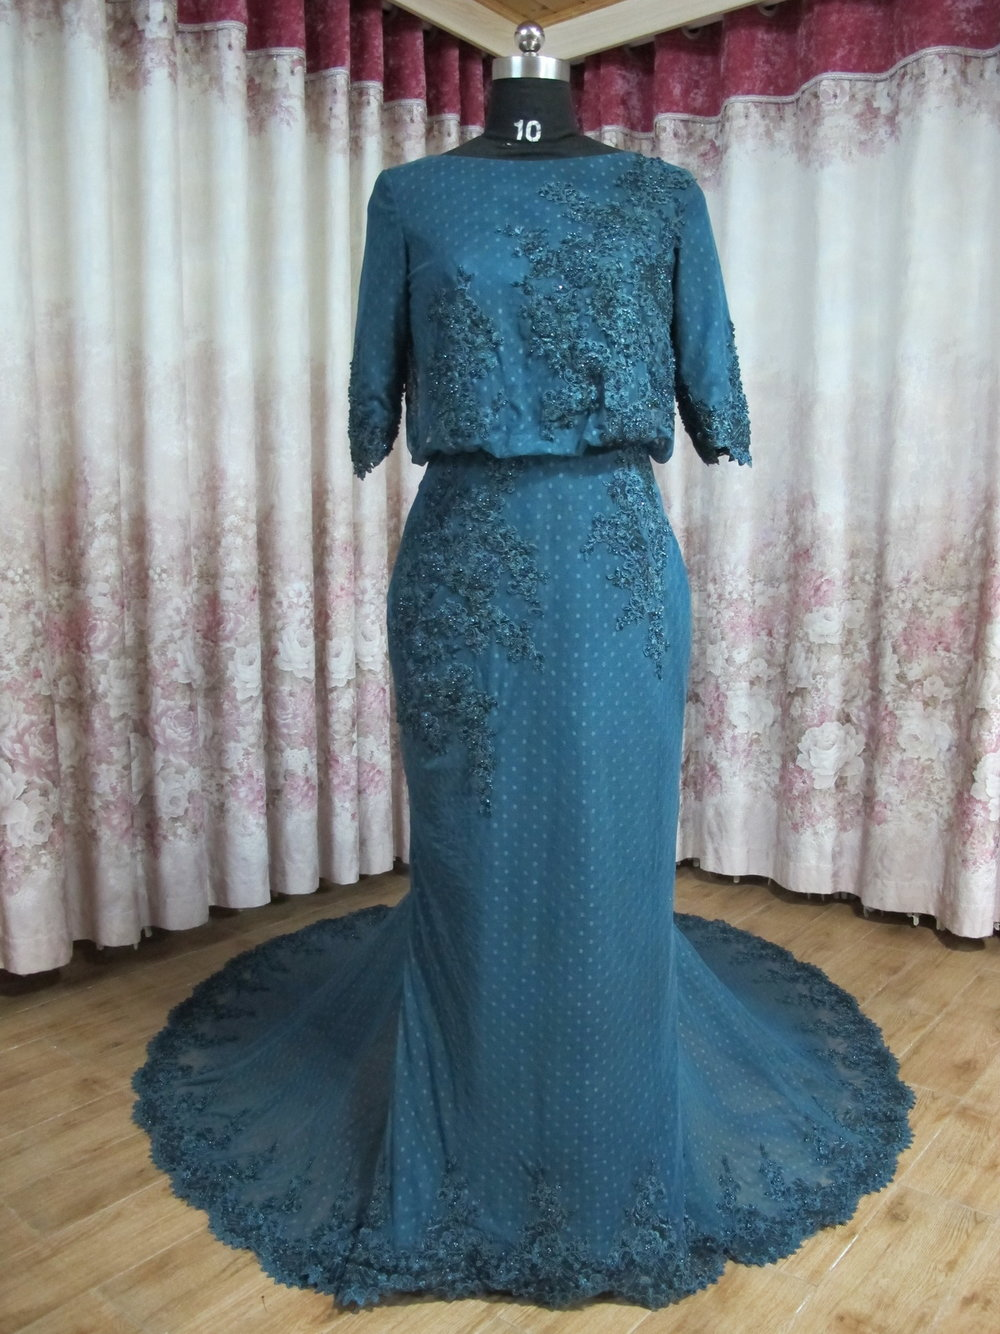 I received the dress and it is so beautiful. I am very satisfied ...